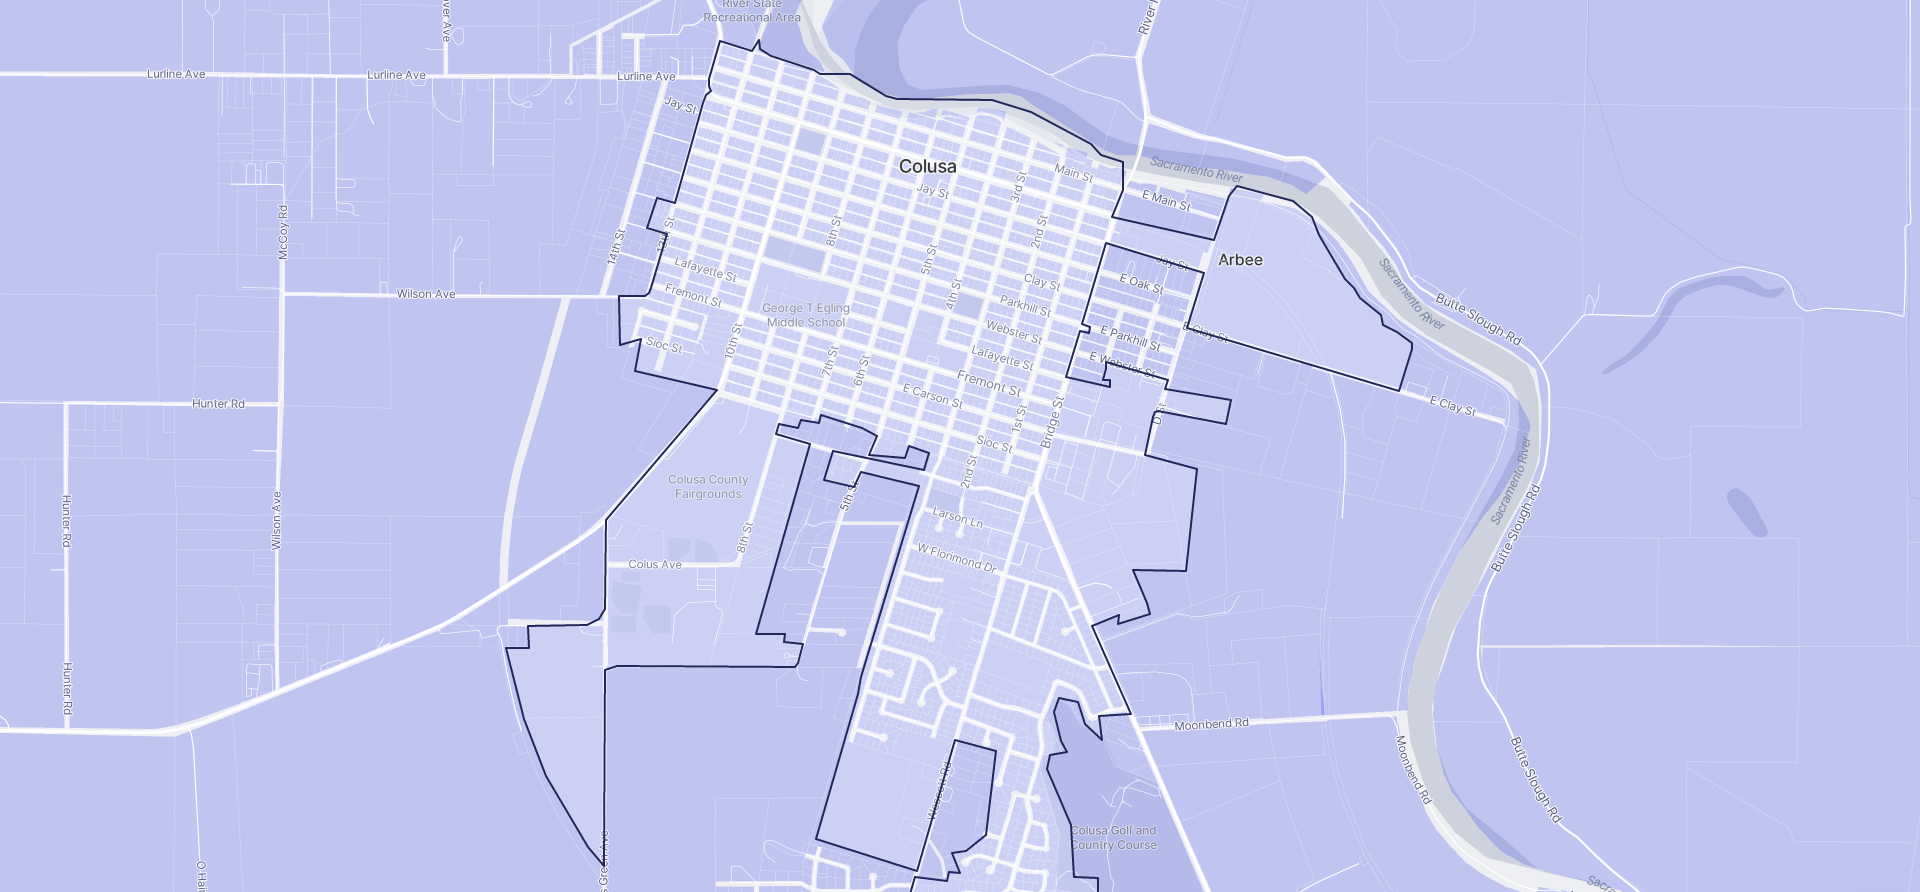 Image of Colusa boundaries on a map.